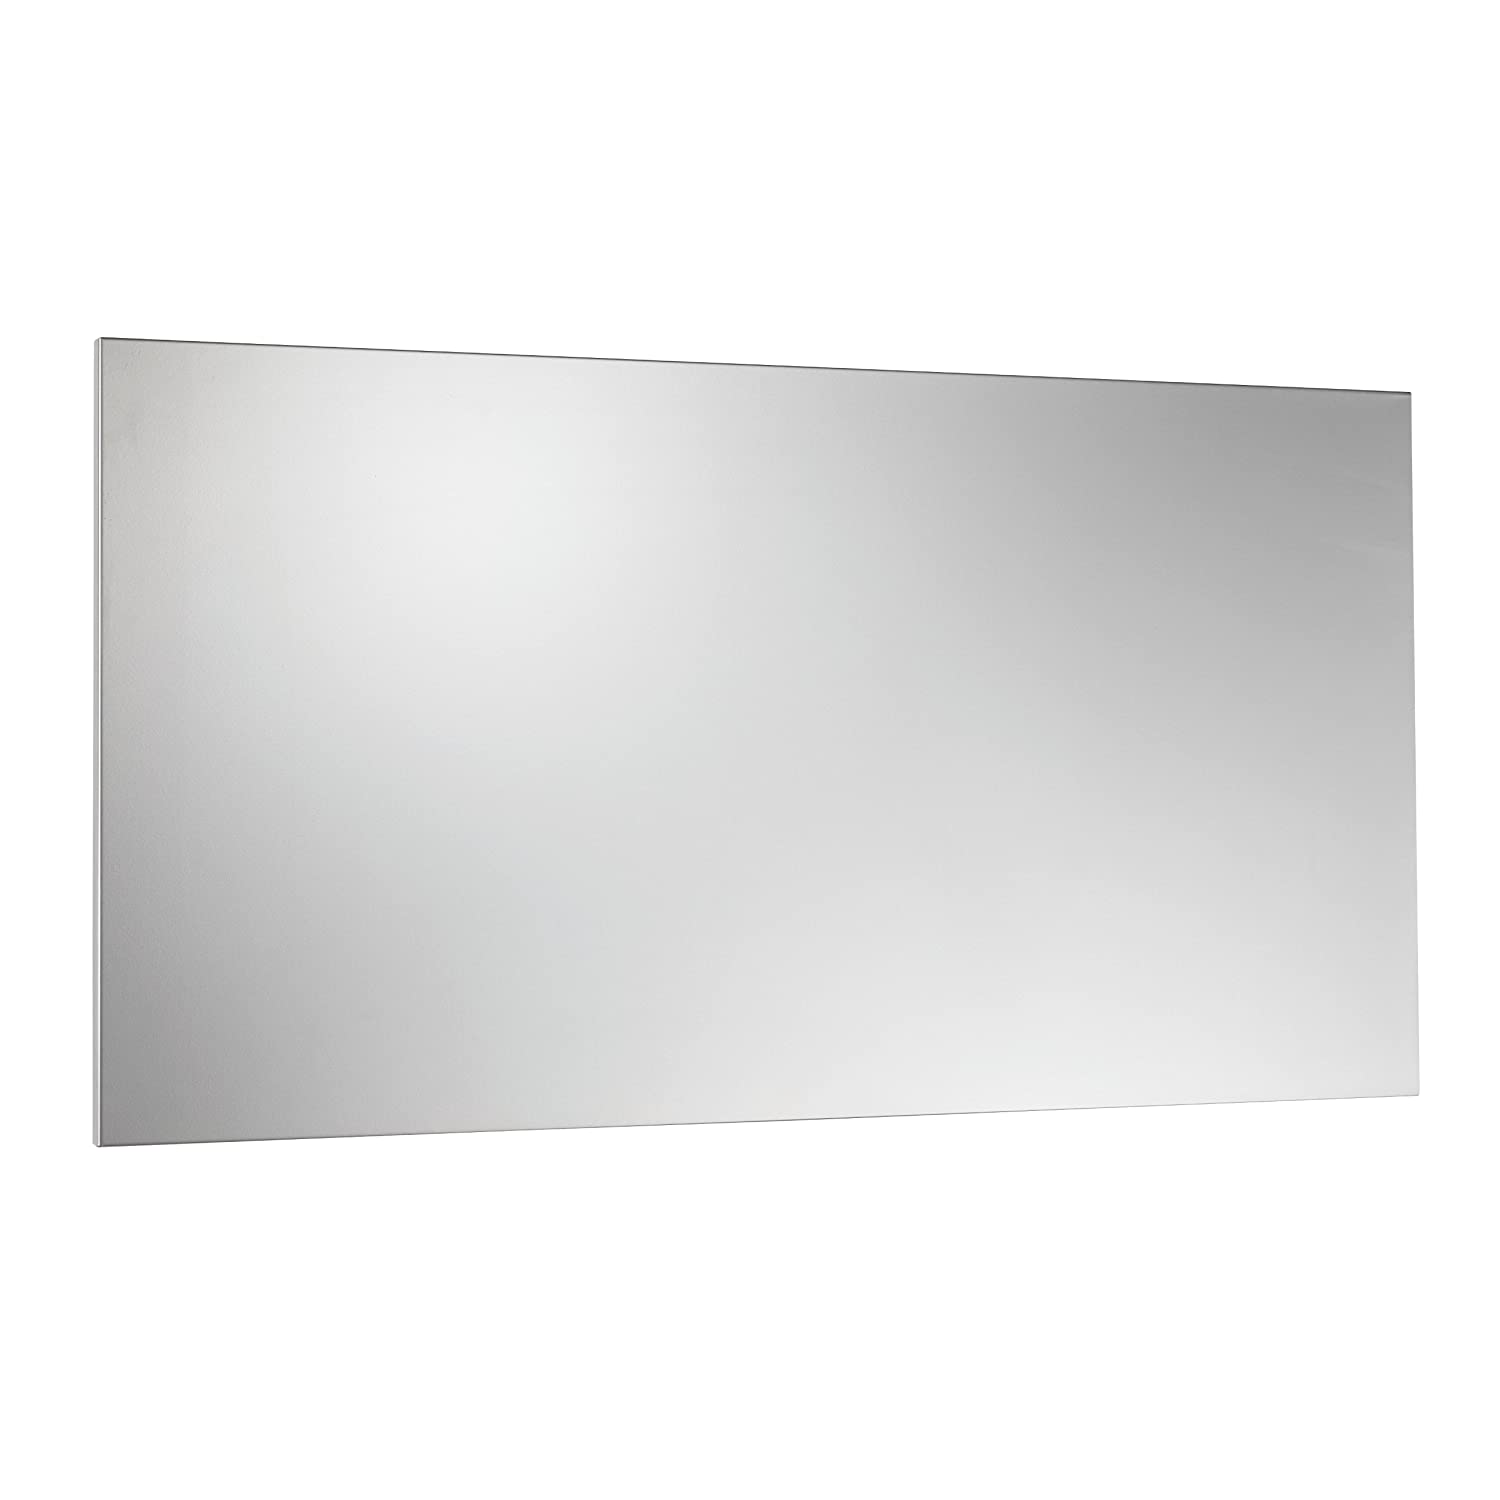 Stainless Steel Dry Erase Boards Clean And Strong